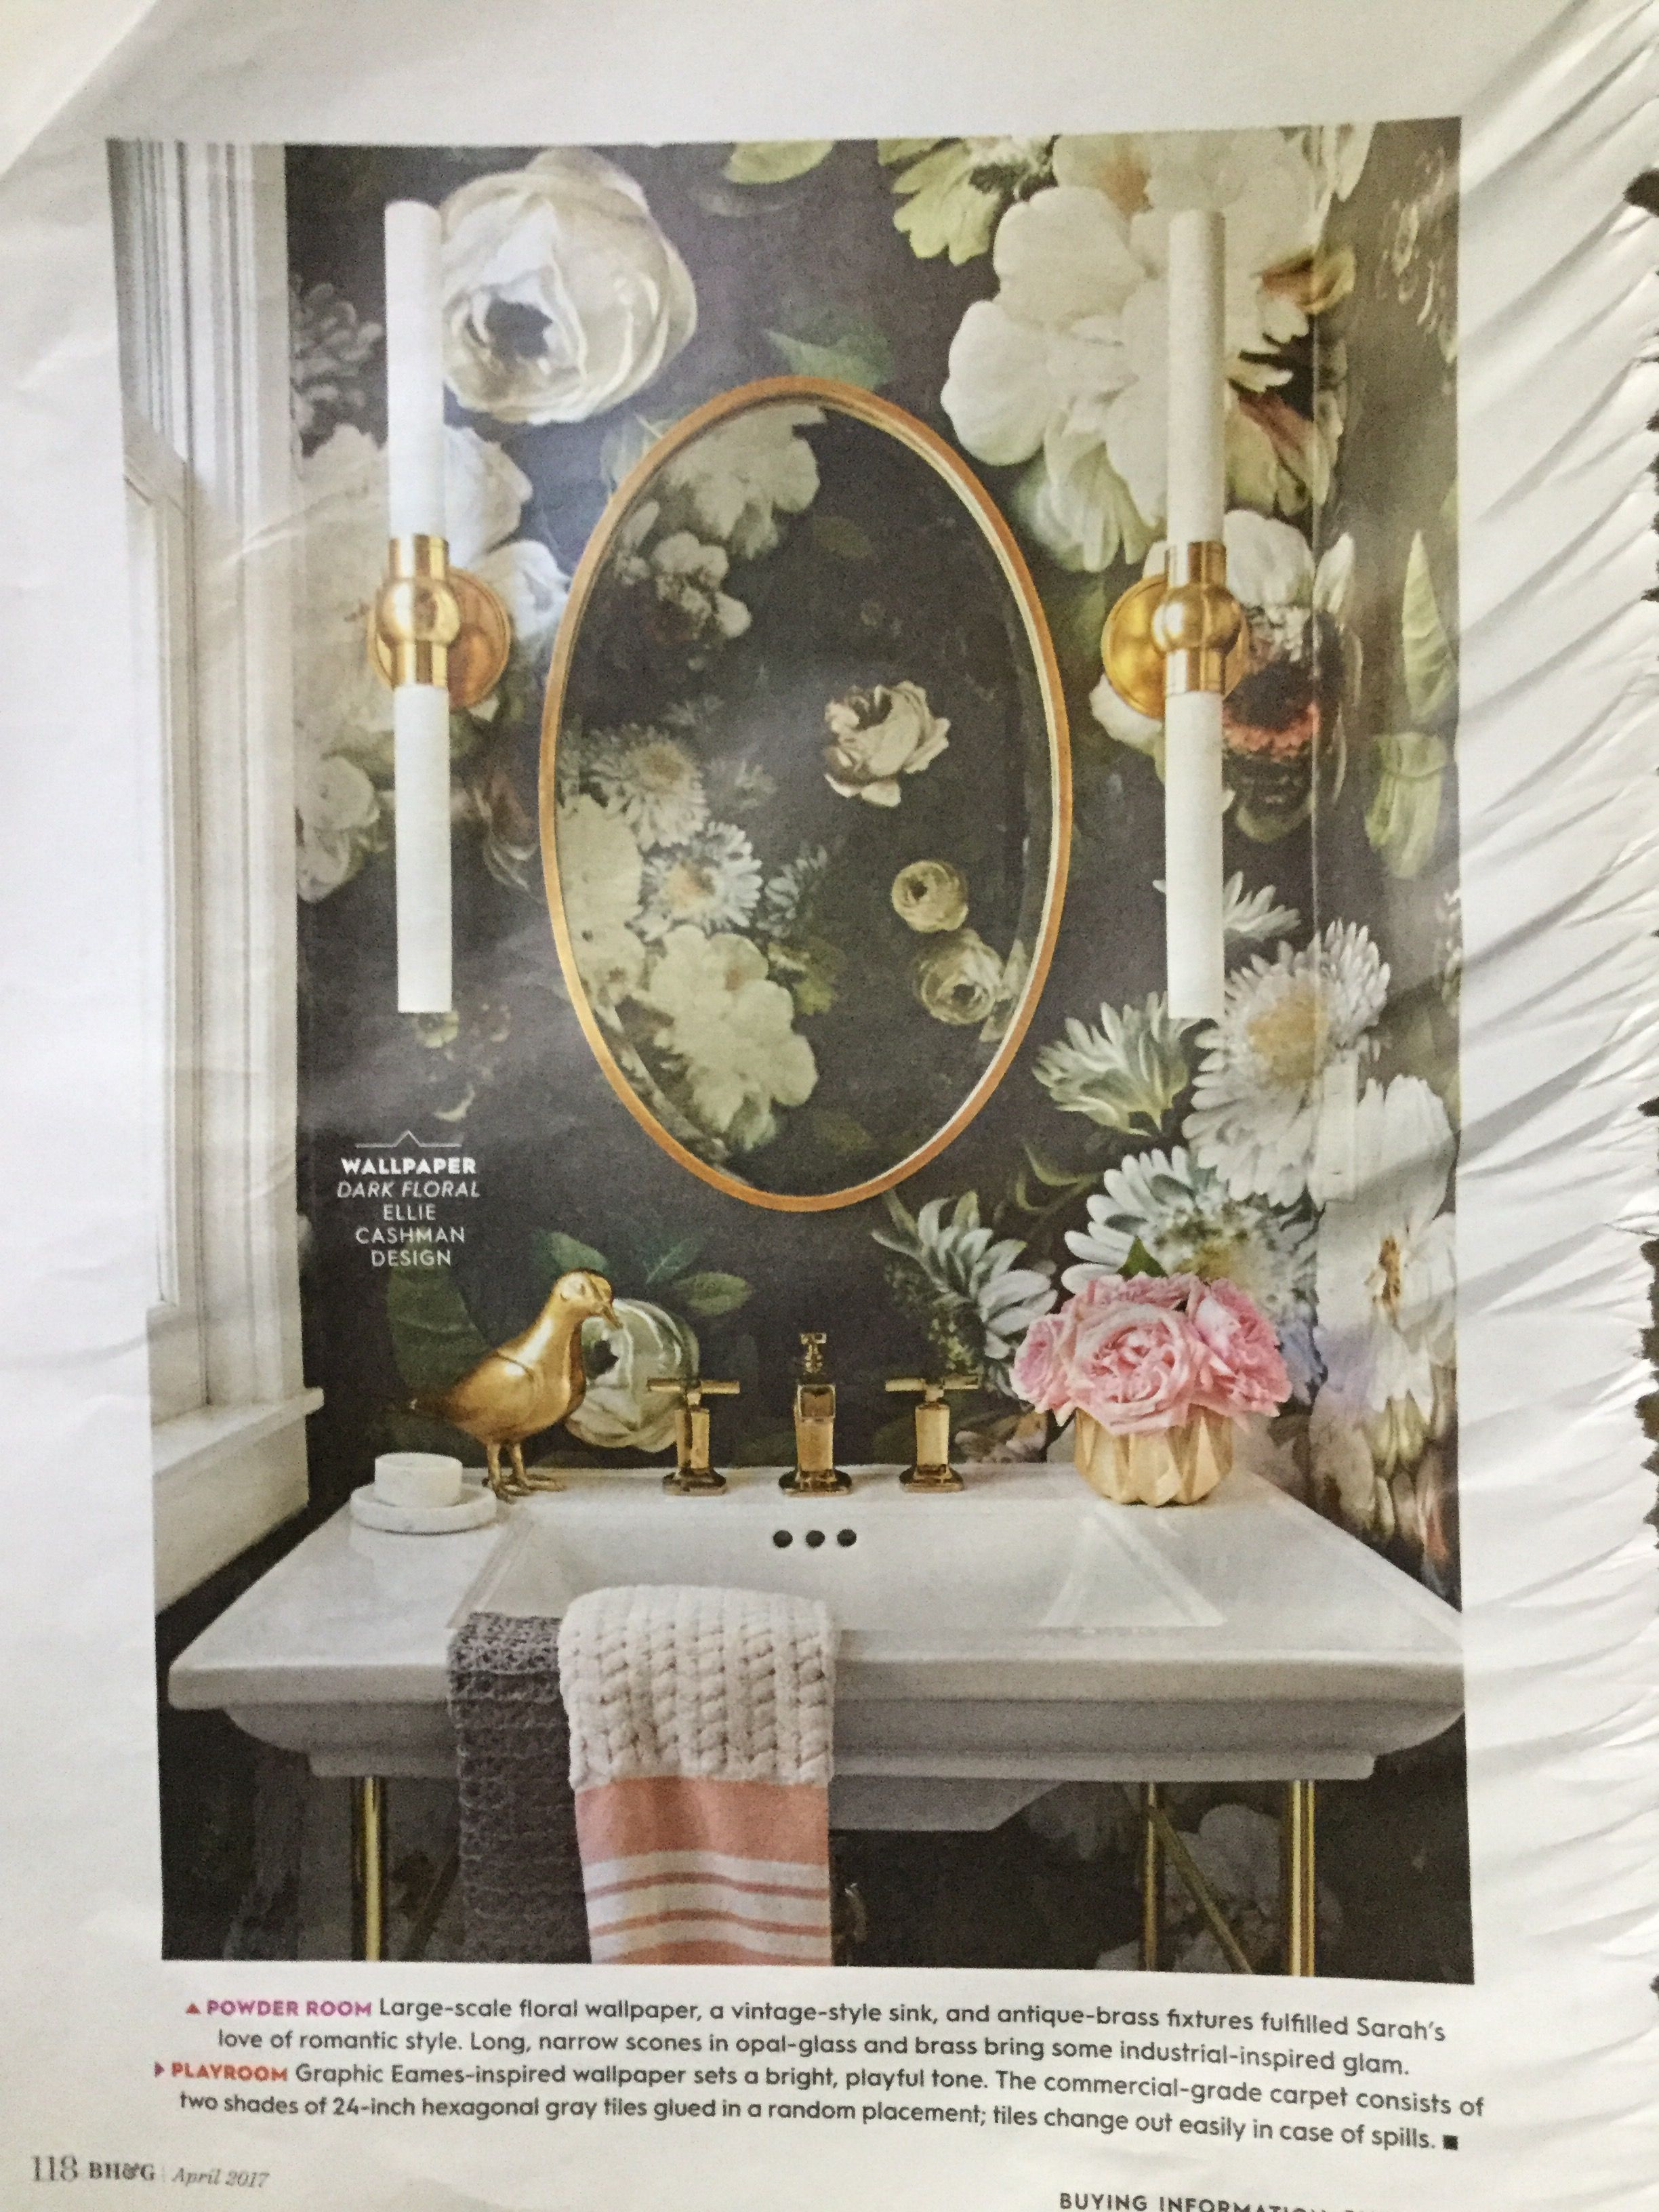 Large scale floral wallpaper and a vintage sink in the